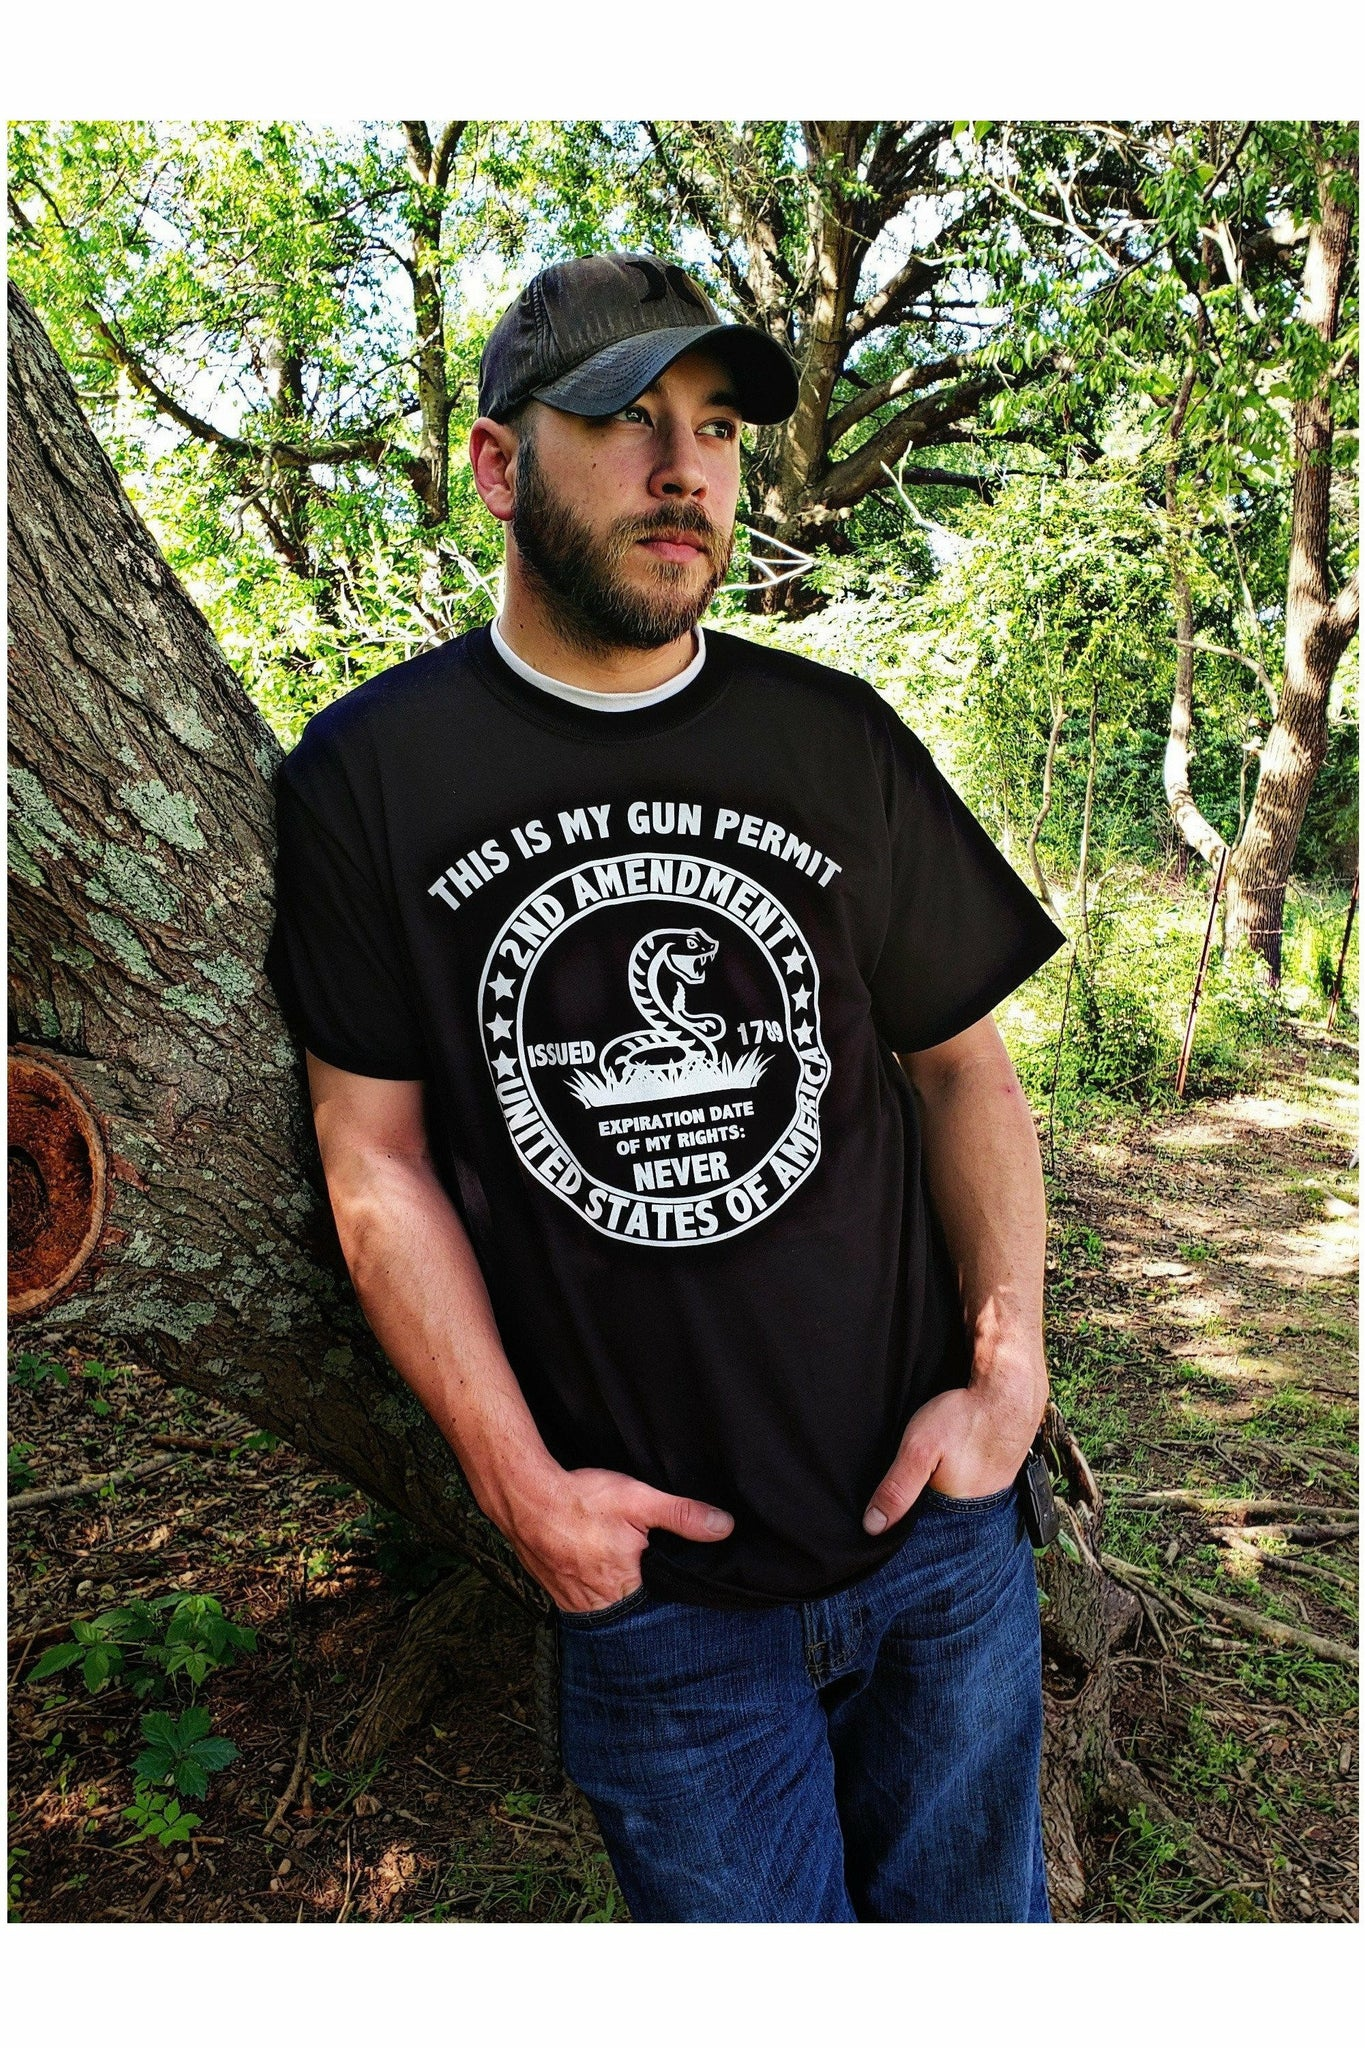 My Gun Permit 2nd Amendment Black Tee